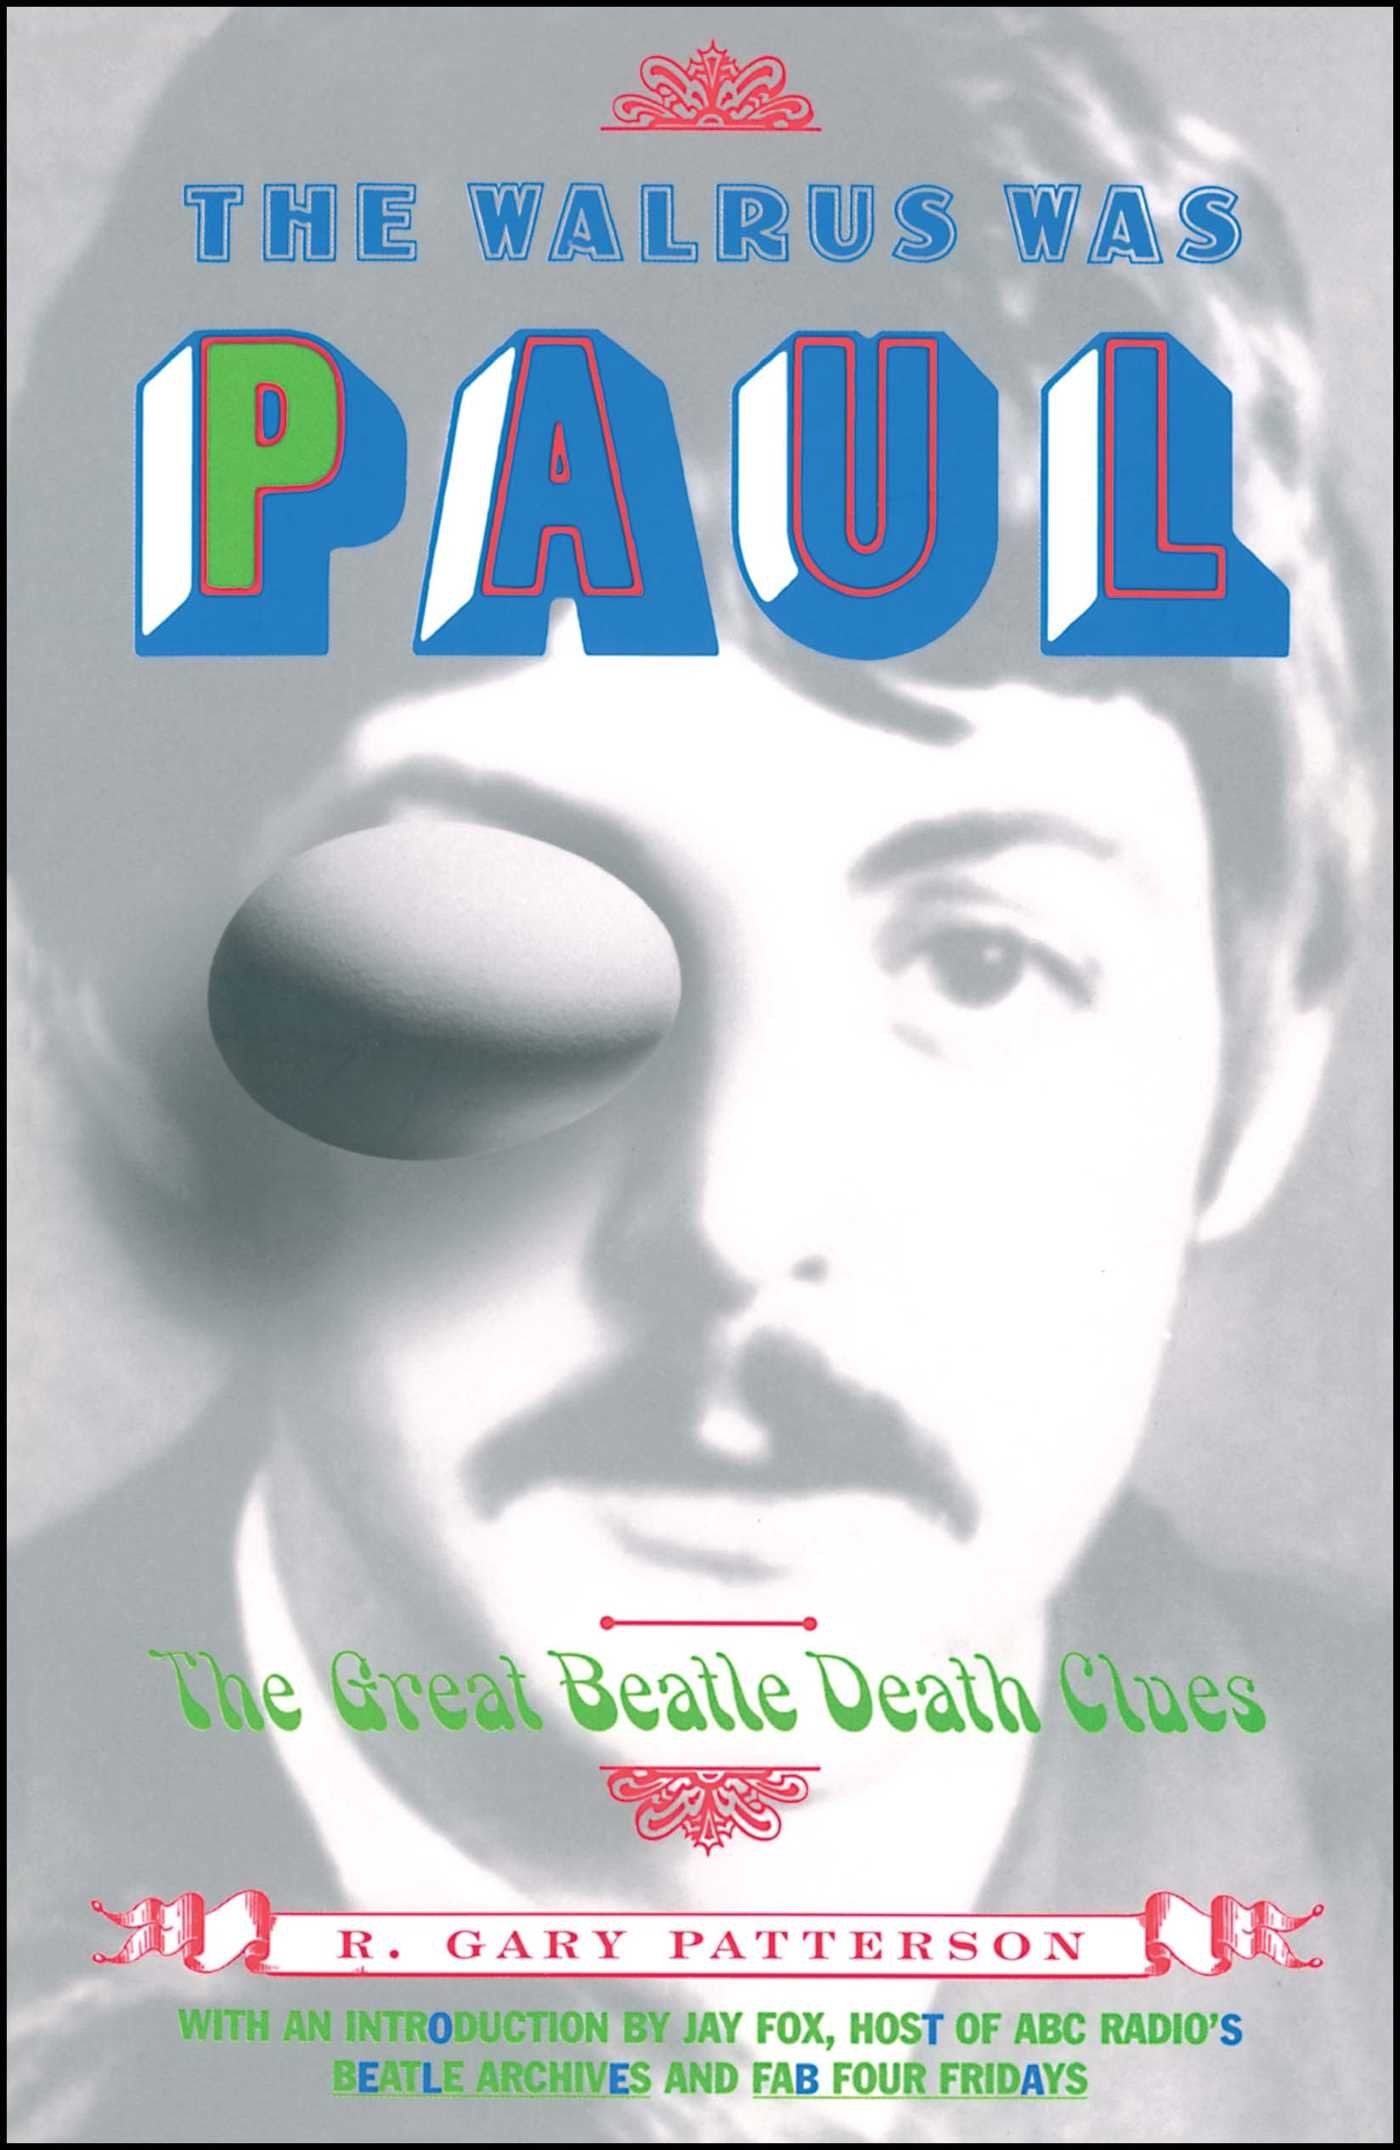 The Walrus Was Paul The Great Beatle Death Clues R Gary